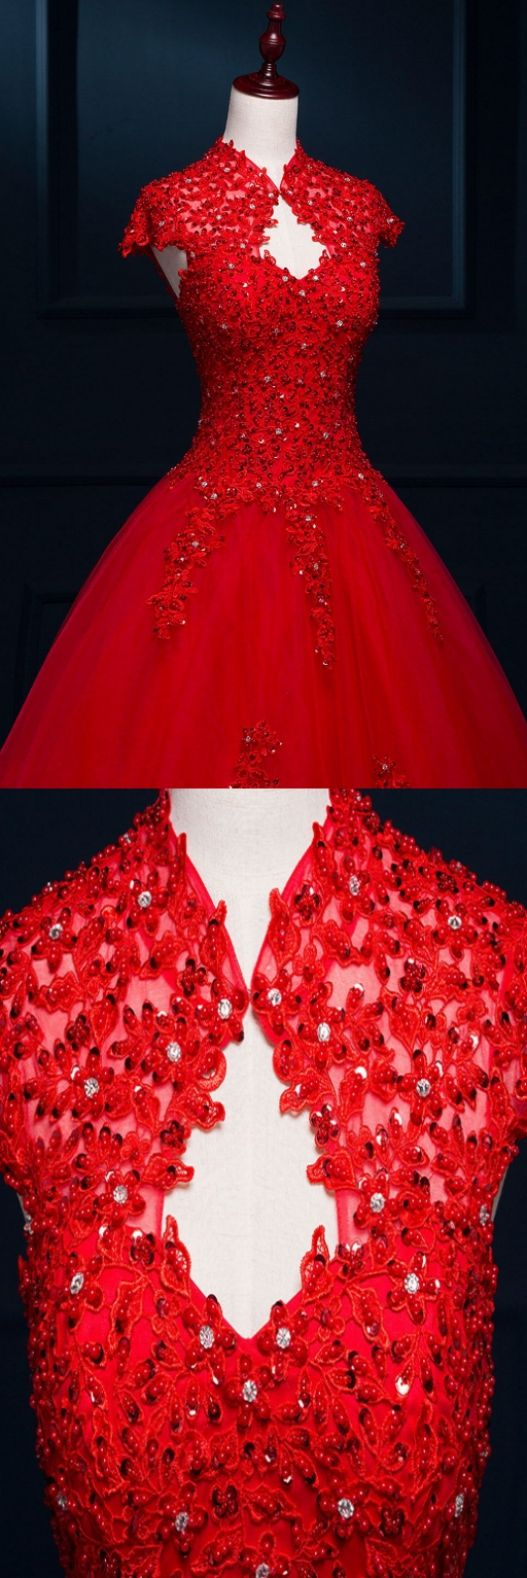 Bridal dresses red floor short red dresses and red wedding dresses